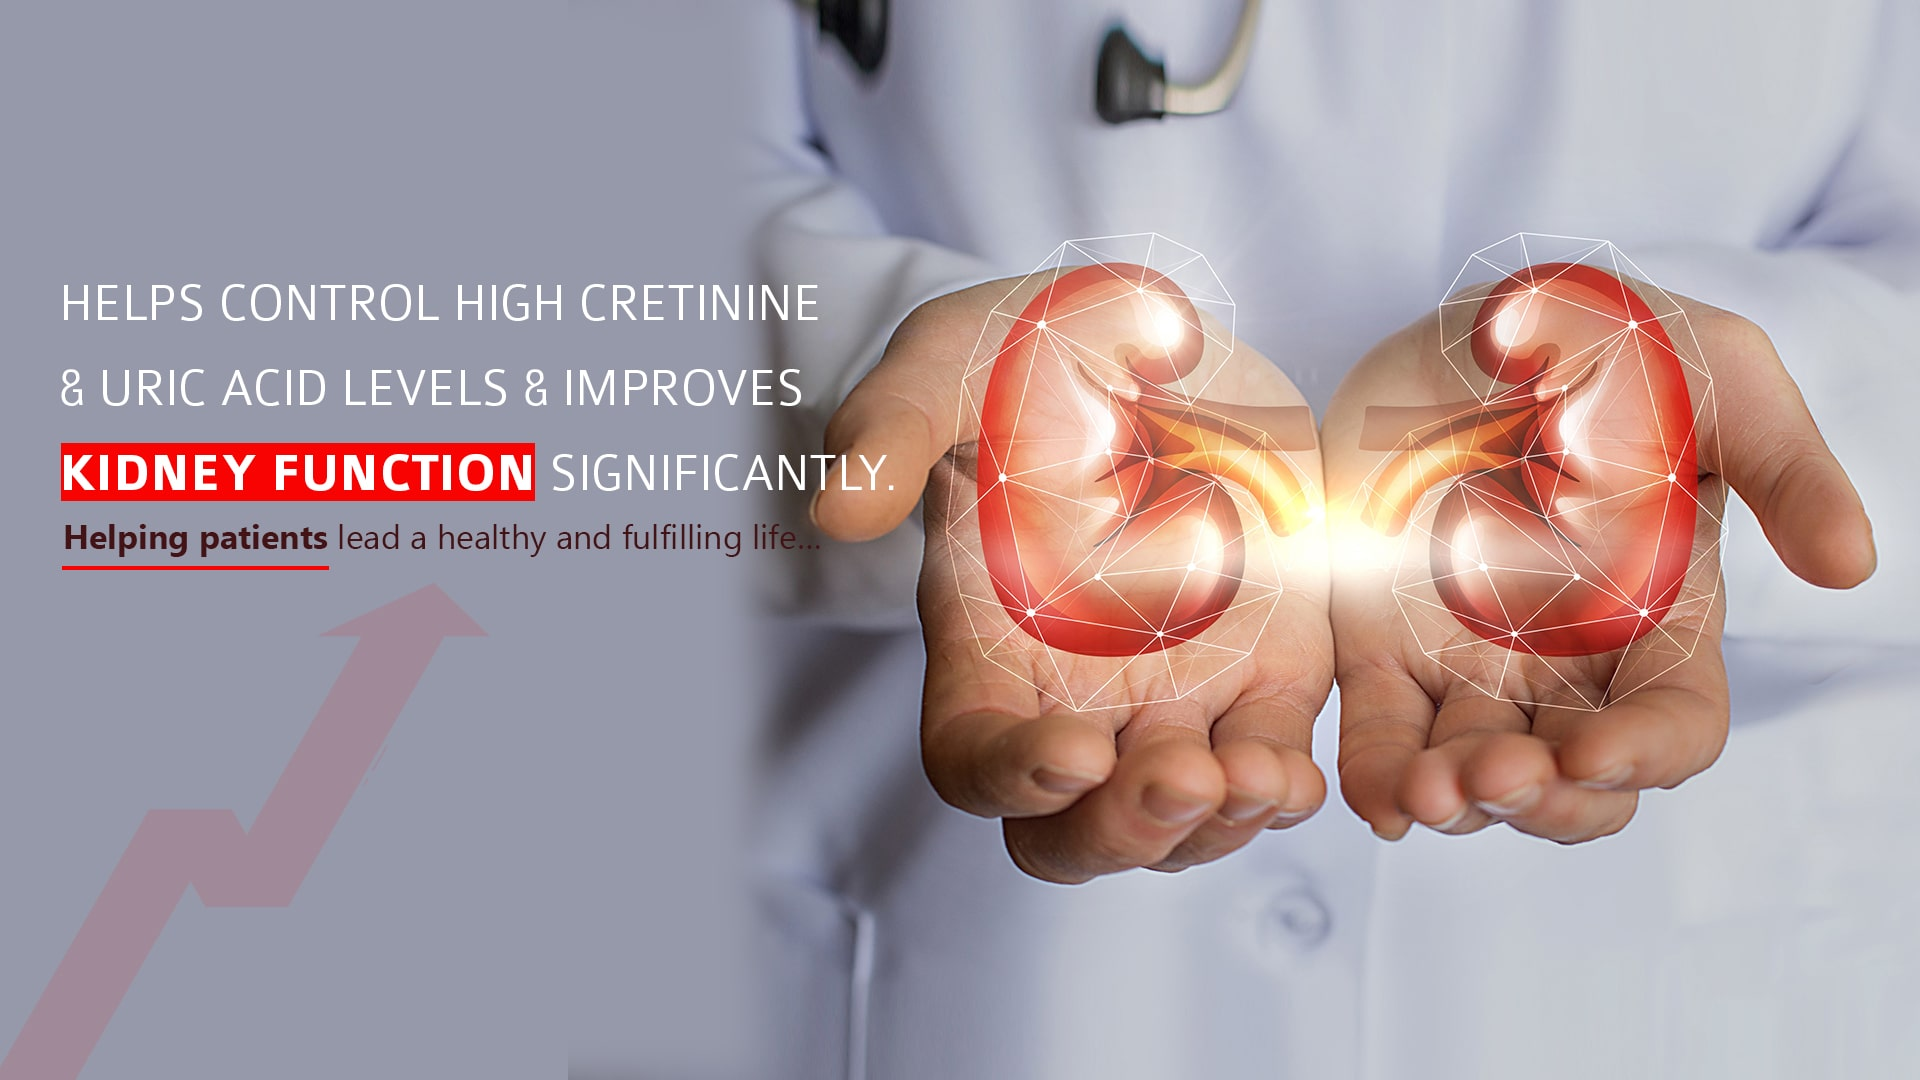 Dr Bhushan Kidney Stone Doctor in Ahmedabad, Gujarat, India